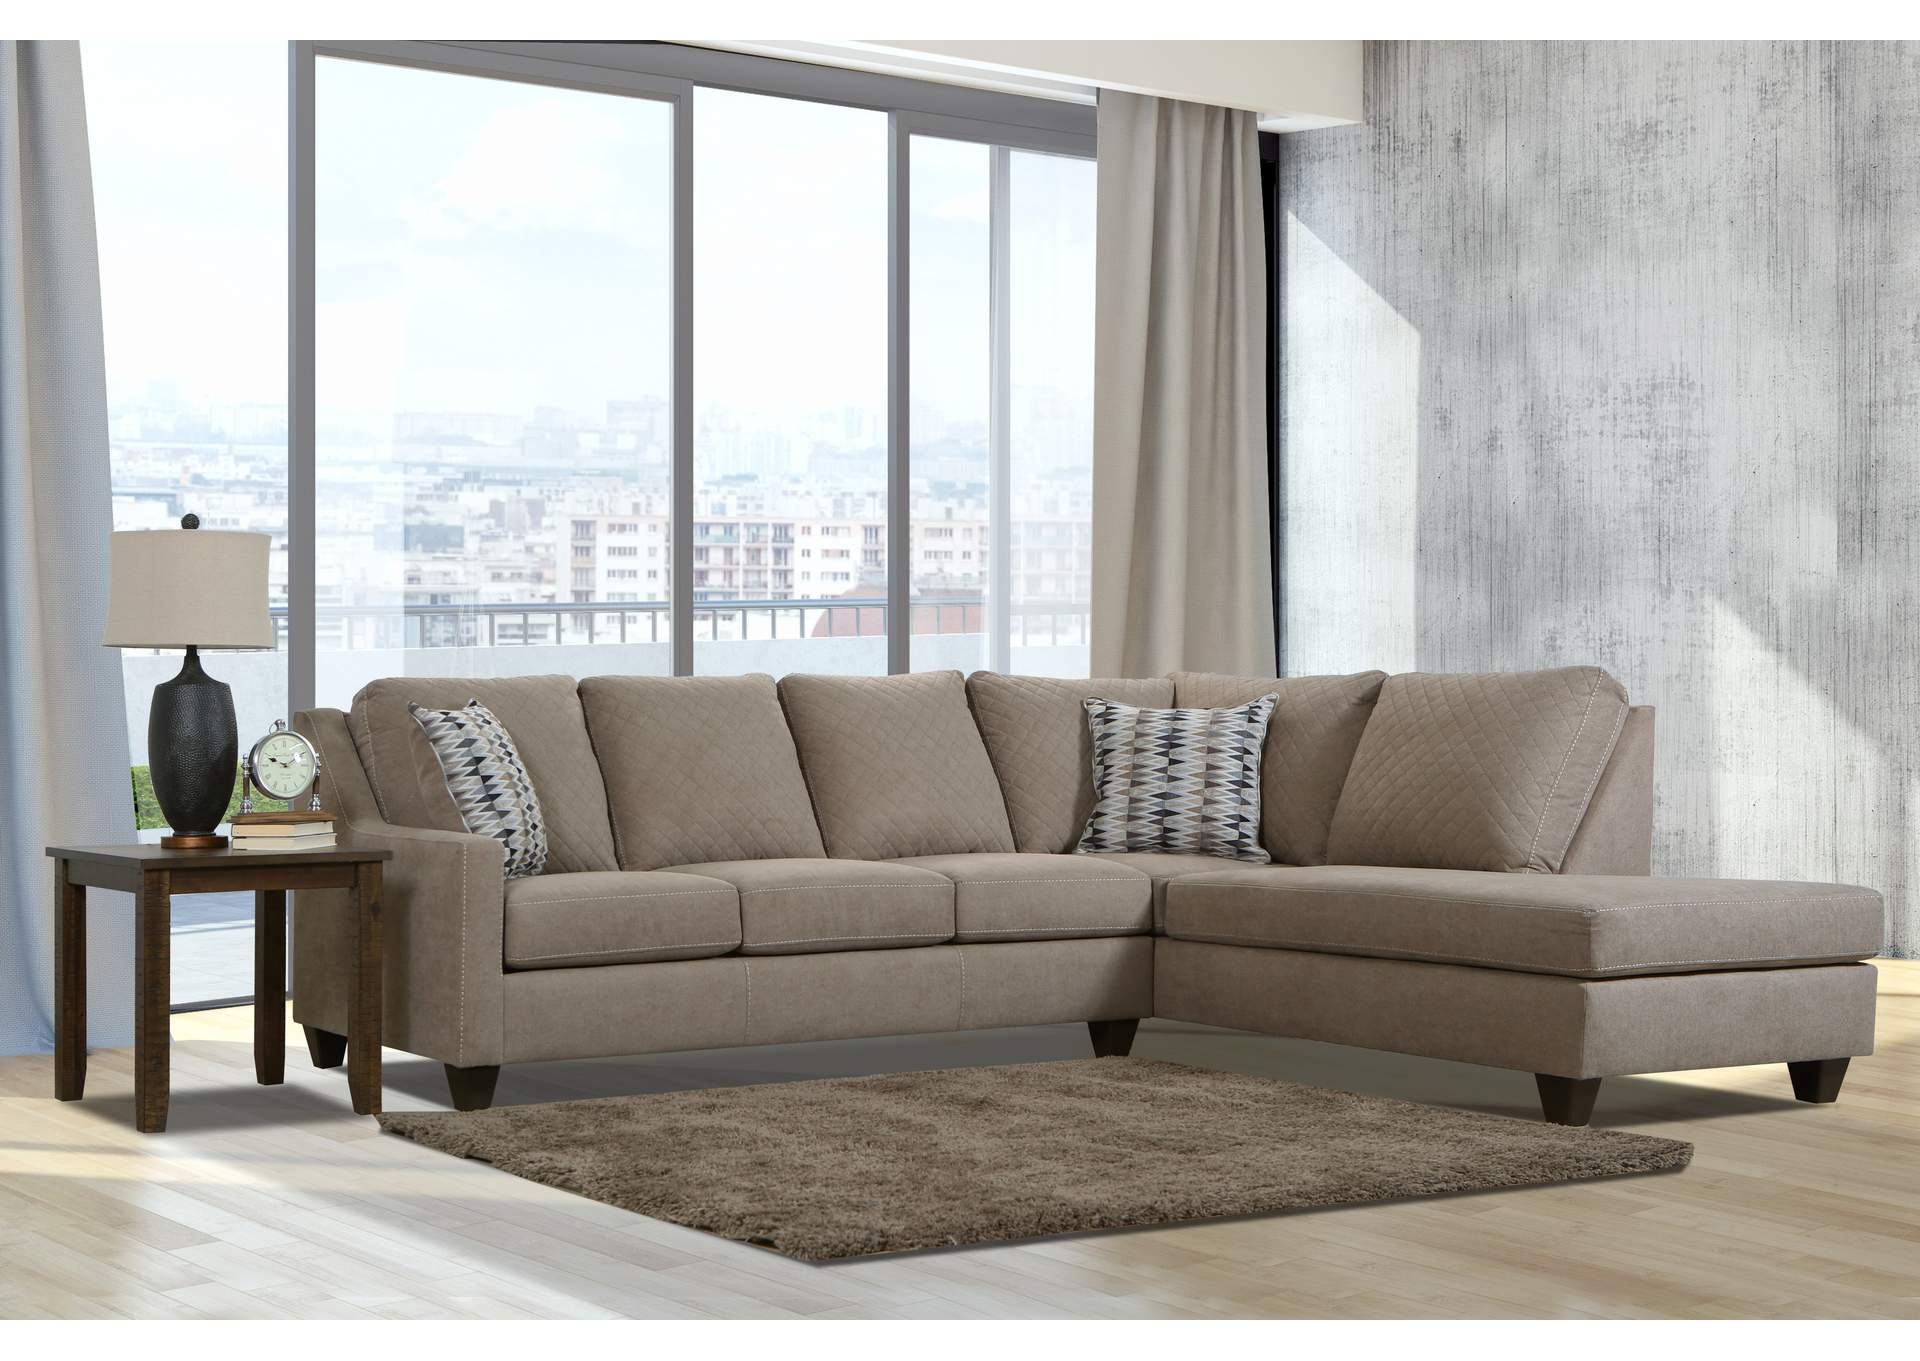 2096 Bianco Sofa - Pacific Tan / Jagged Earth,Lane Furniture